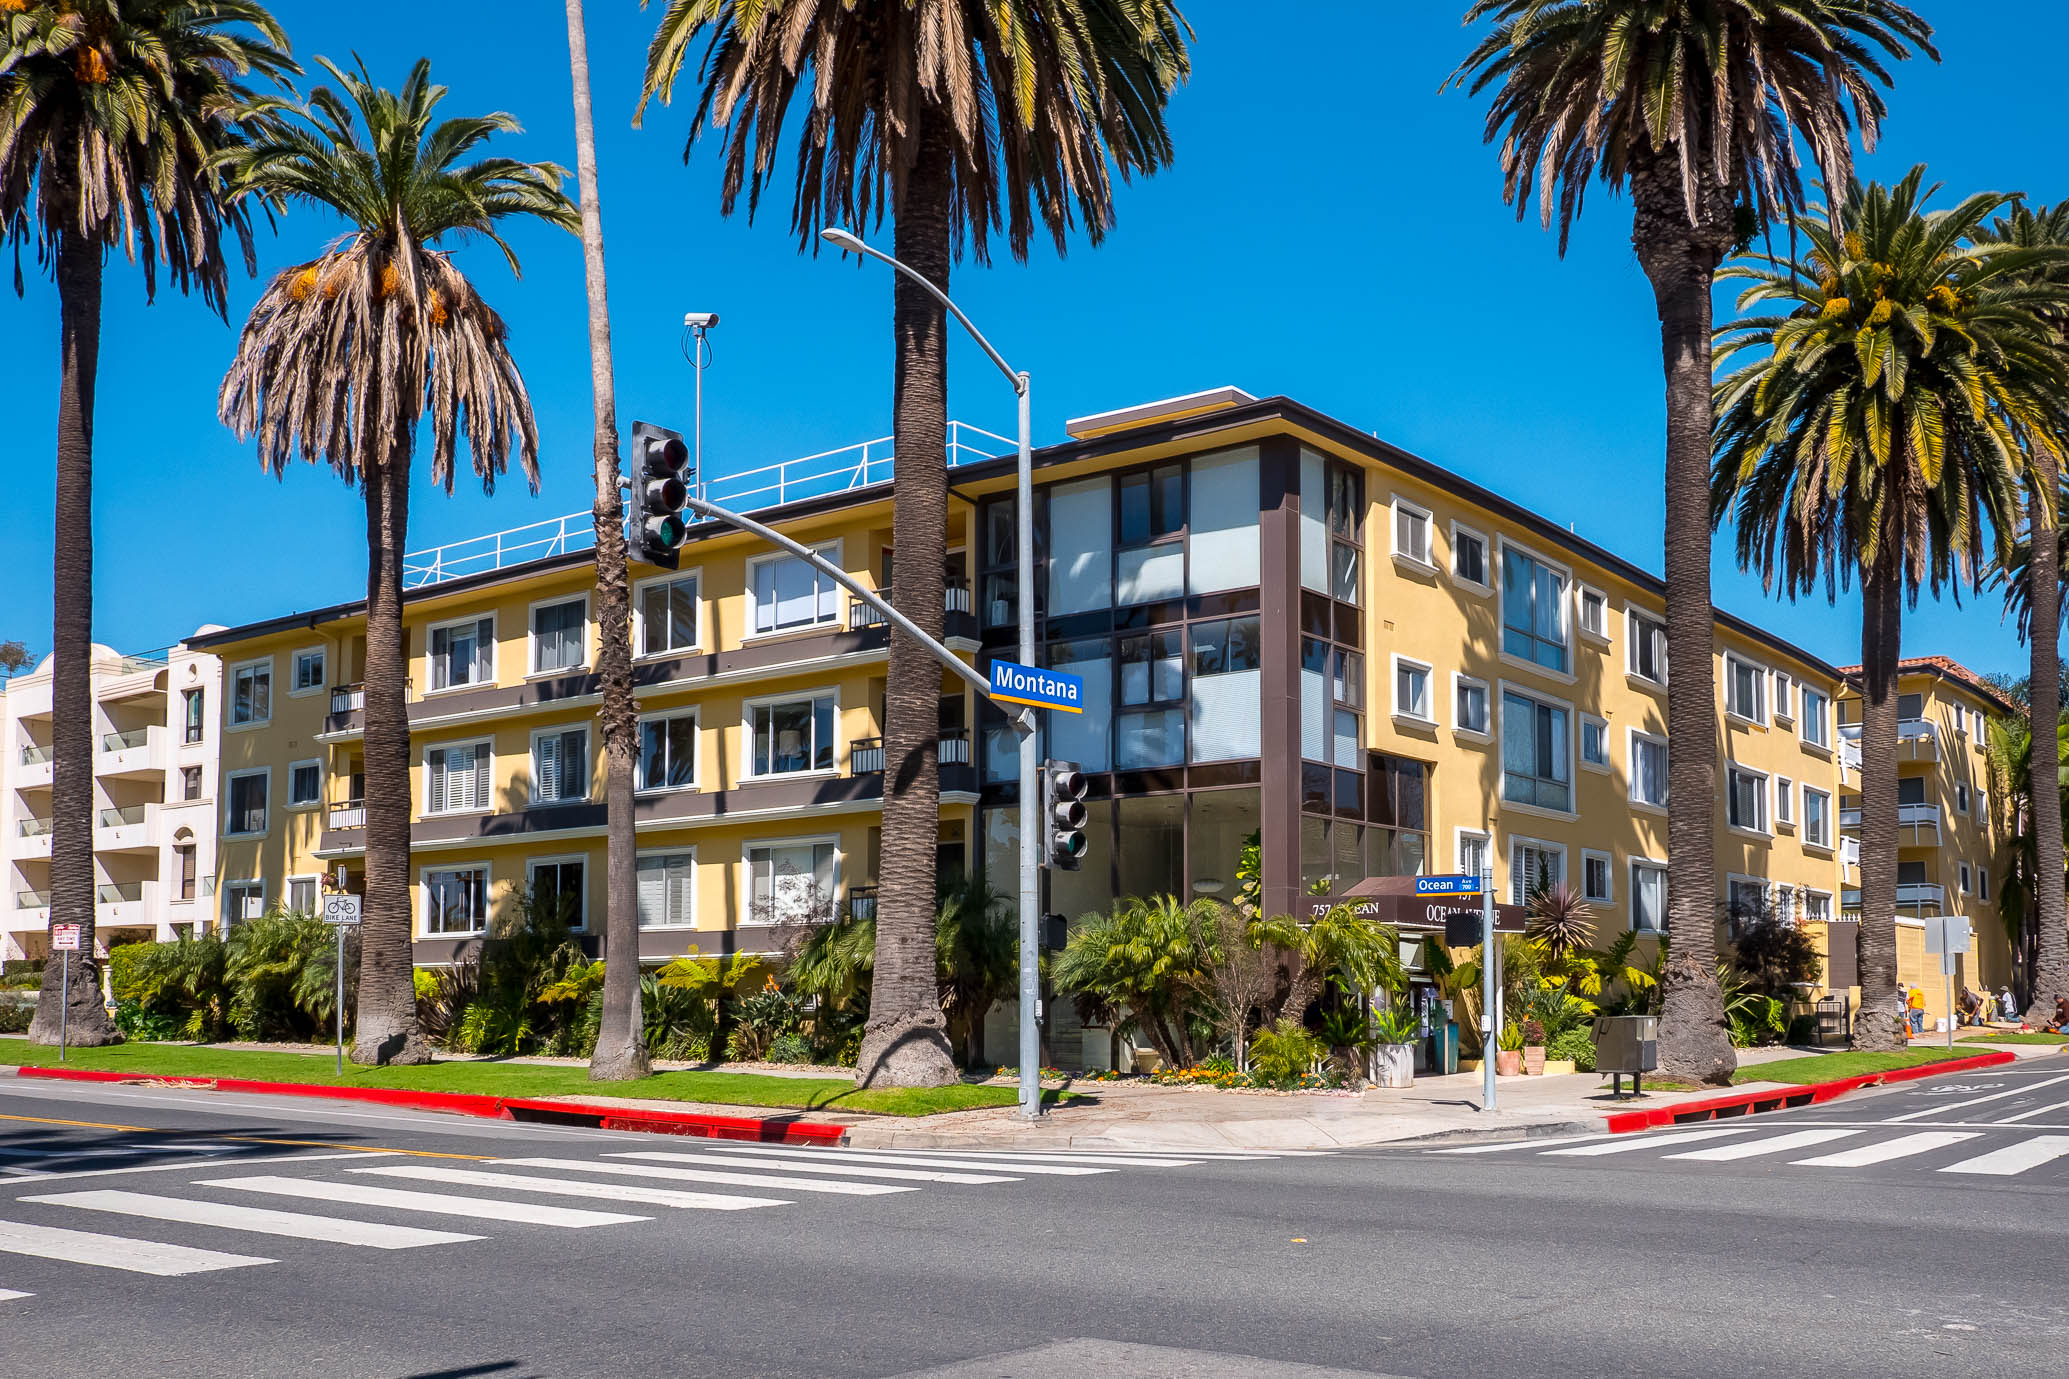 Best Location in Santa Monica - 2nd Floor Condo with Pool & Rooftop with Ocean Views - All Utilities Included!